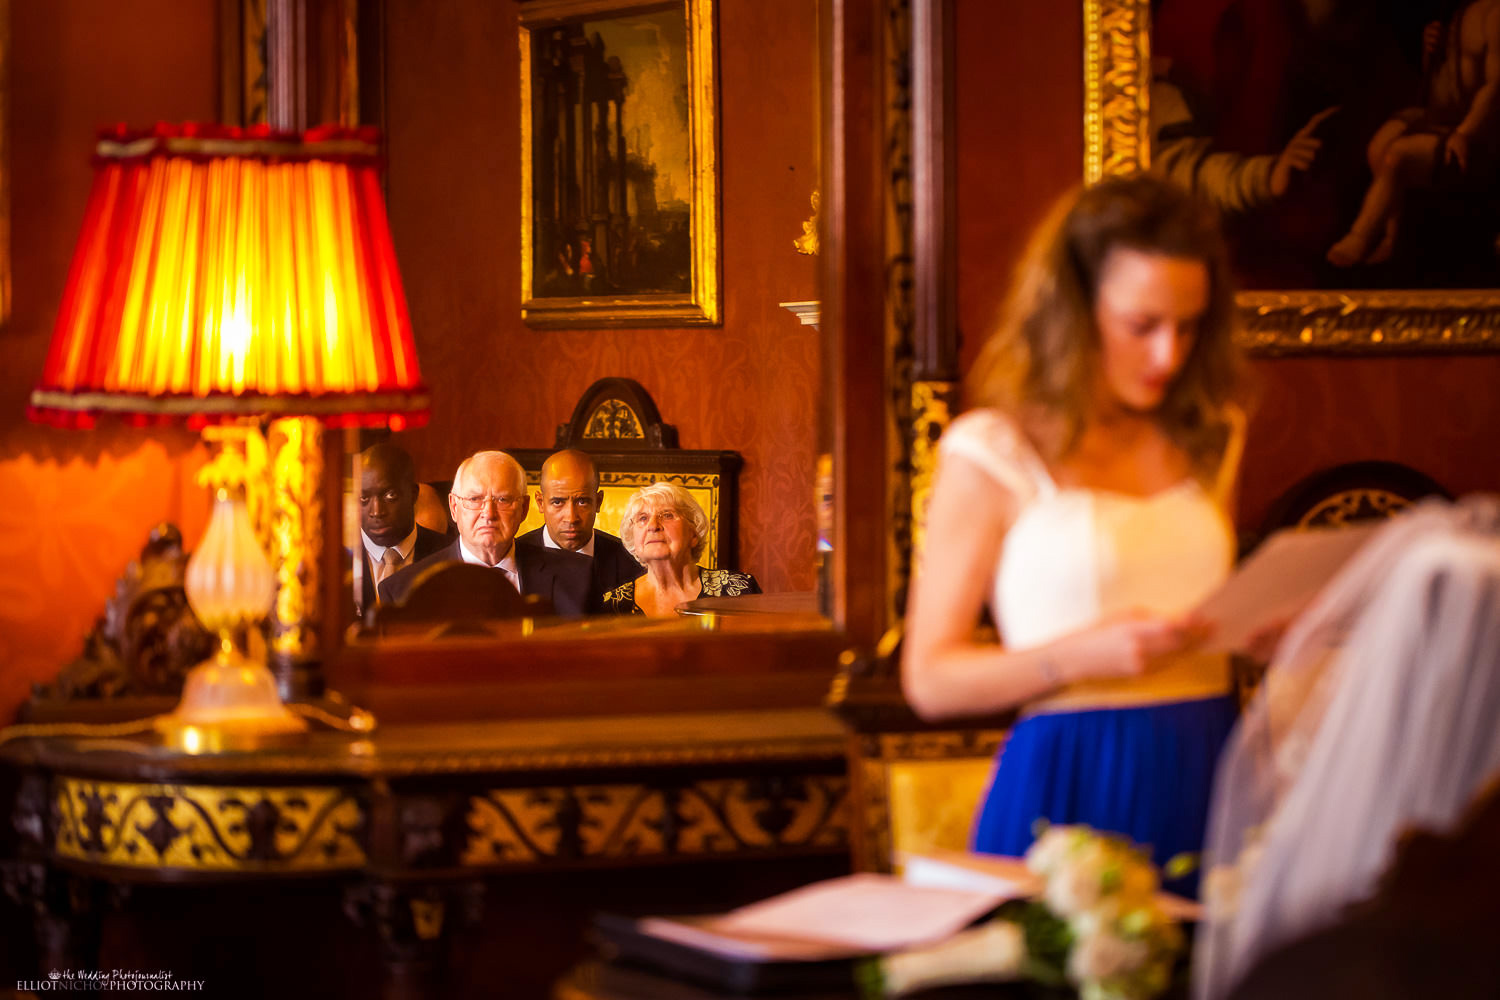 Wedding guests reflected in a wall mirror during the wedding ceremony in the Sala Lombarda room at the Palazzo Parisio in Malta.